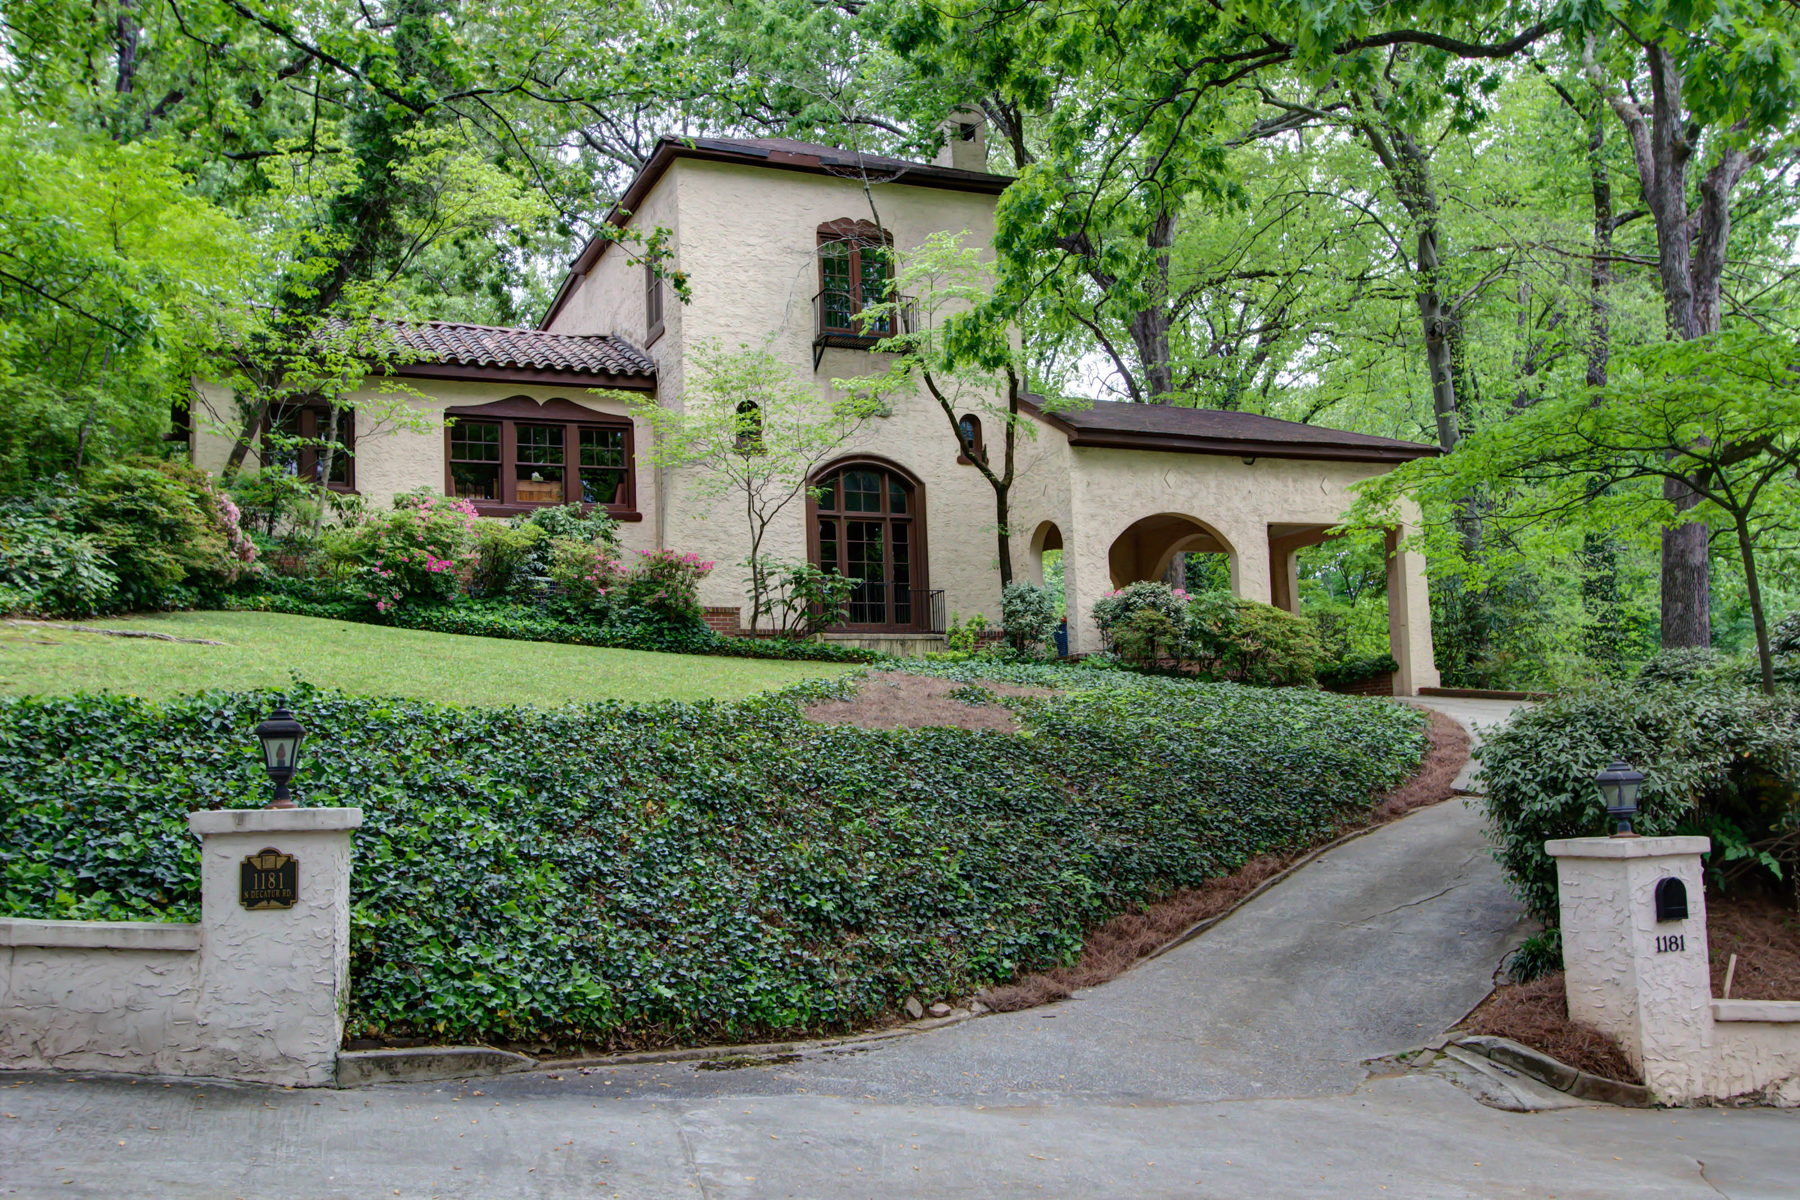 단독 가정 주택 용 매매 에 Spectacular Spanish Villa On Double Lot In Druid Hills 1181 N Decatur Road NE Druid Hills, Atlanta, 조지아, 30306 미국